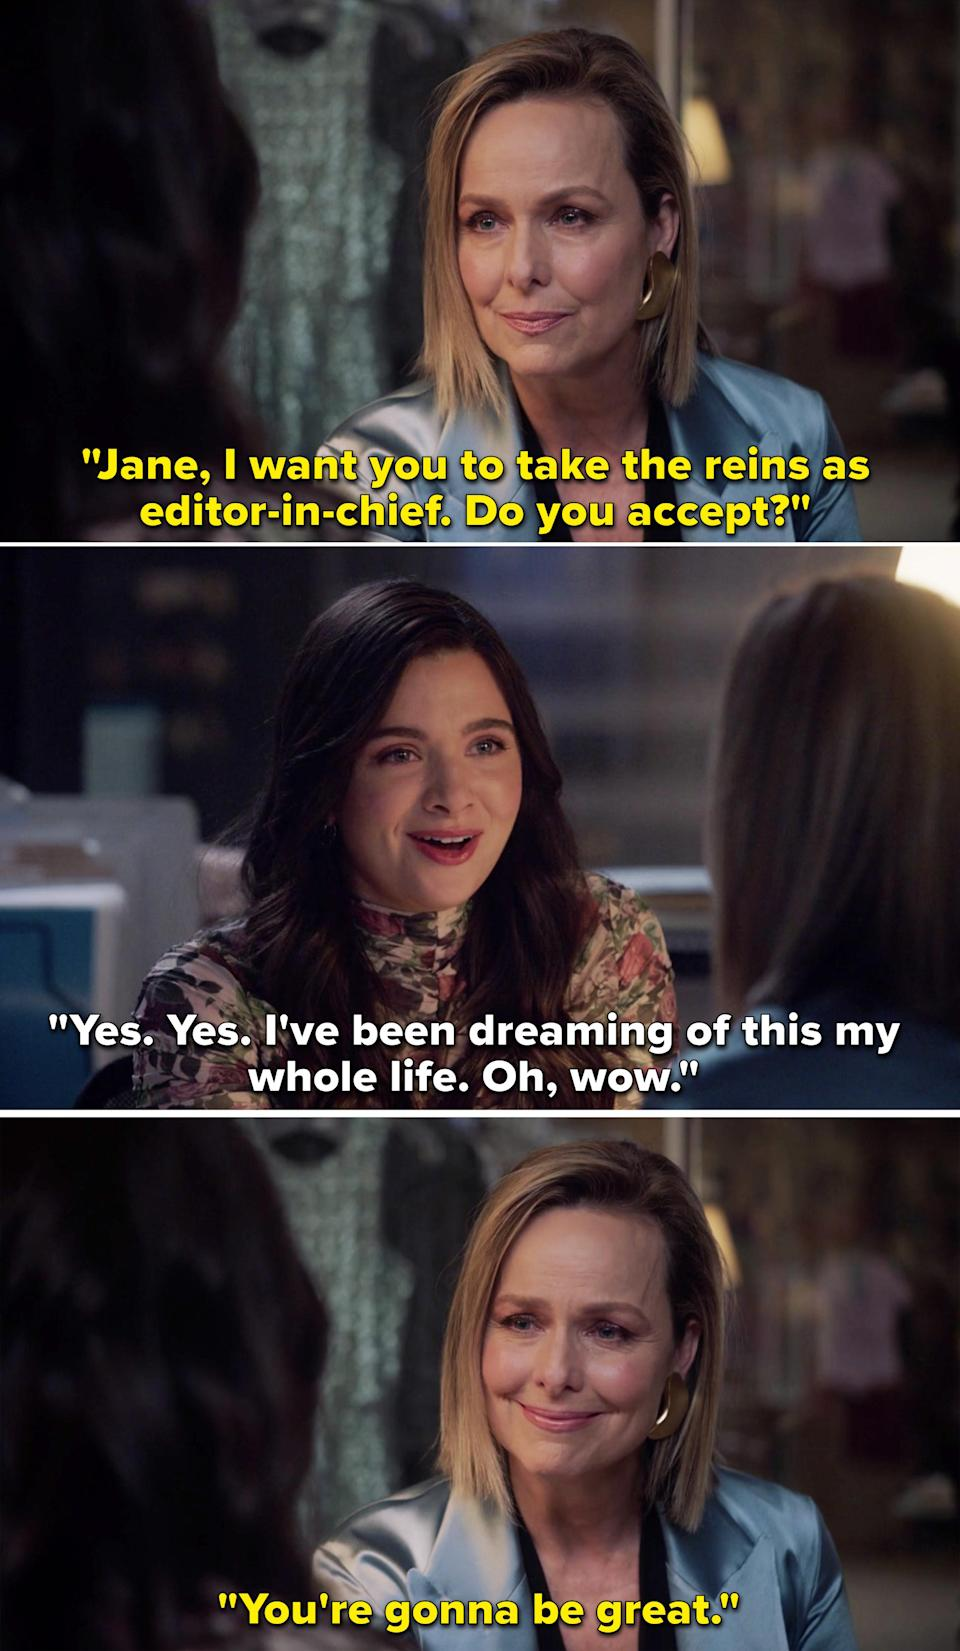 """Jacqueline telling Jane, """"I want you to take the reins as editor in chief. Do you accept?"""""""